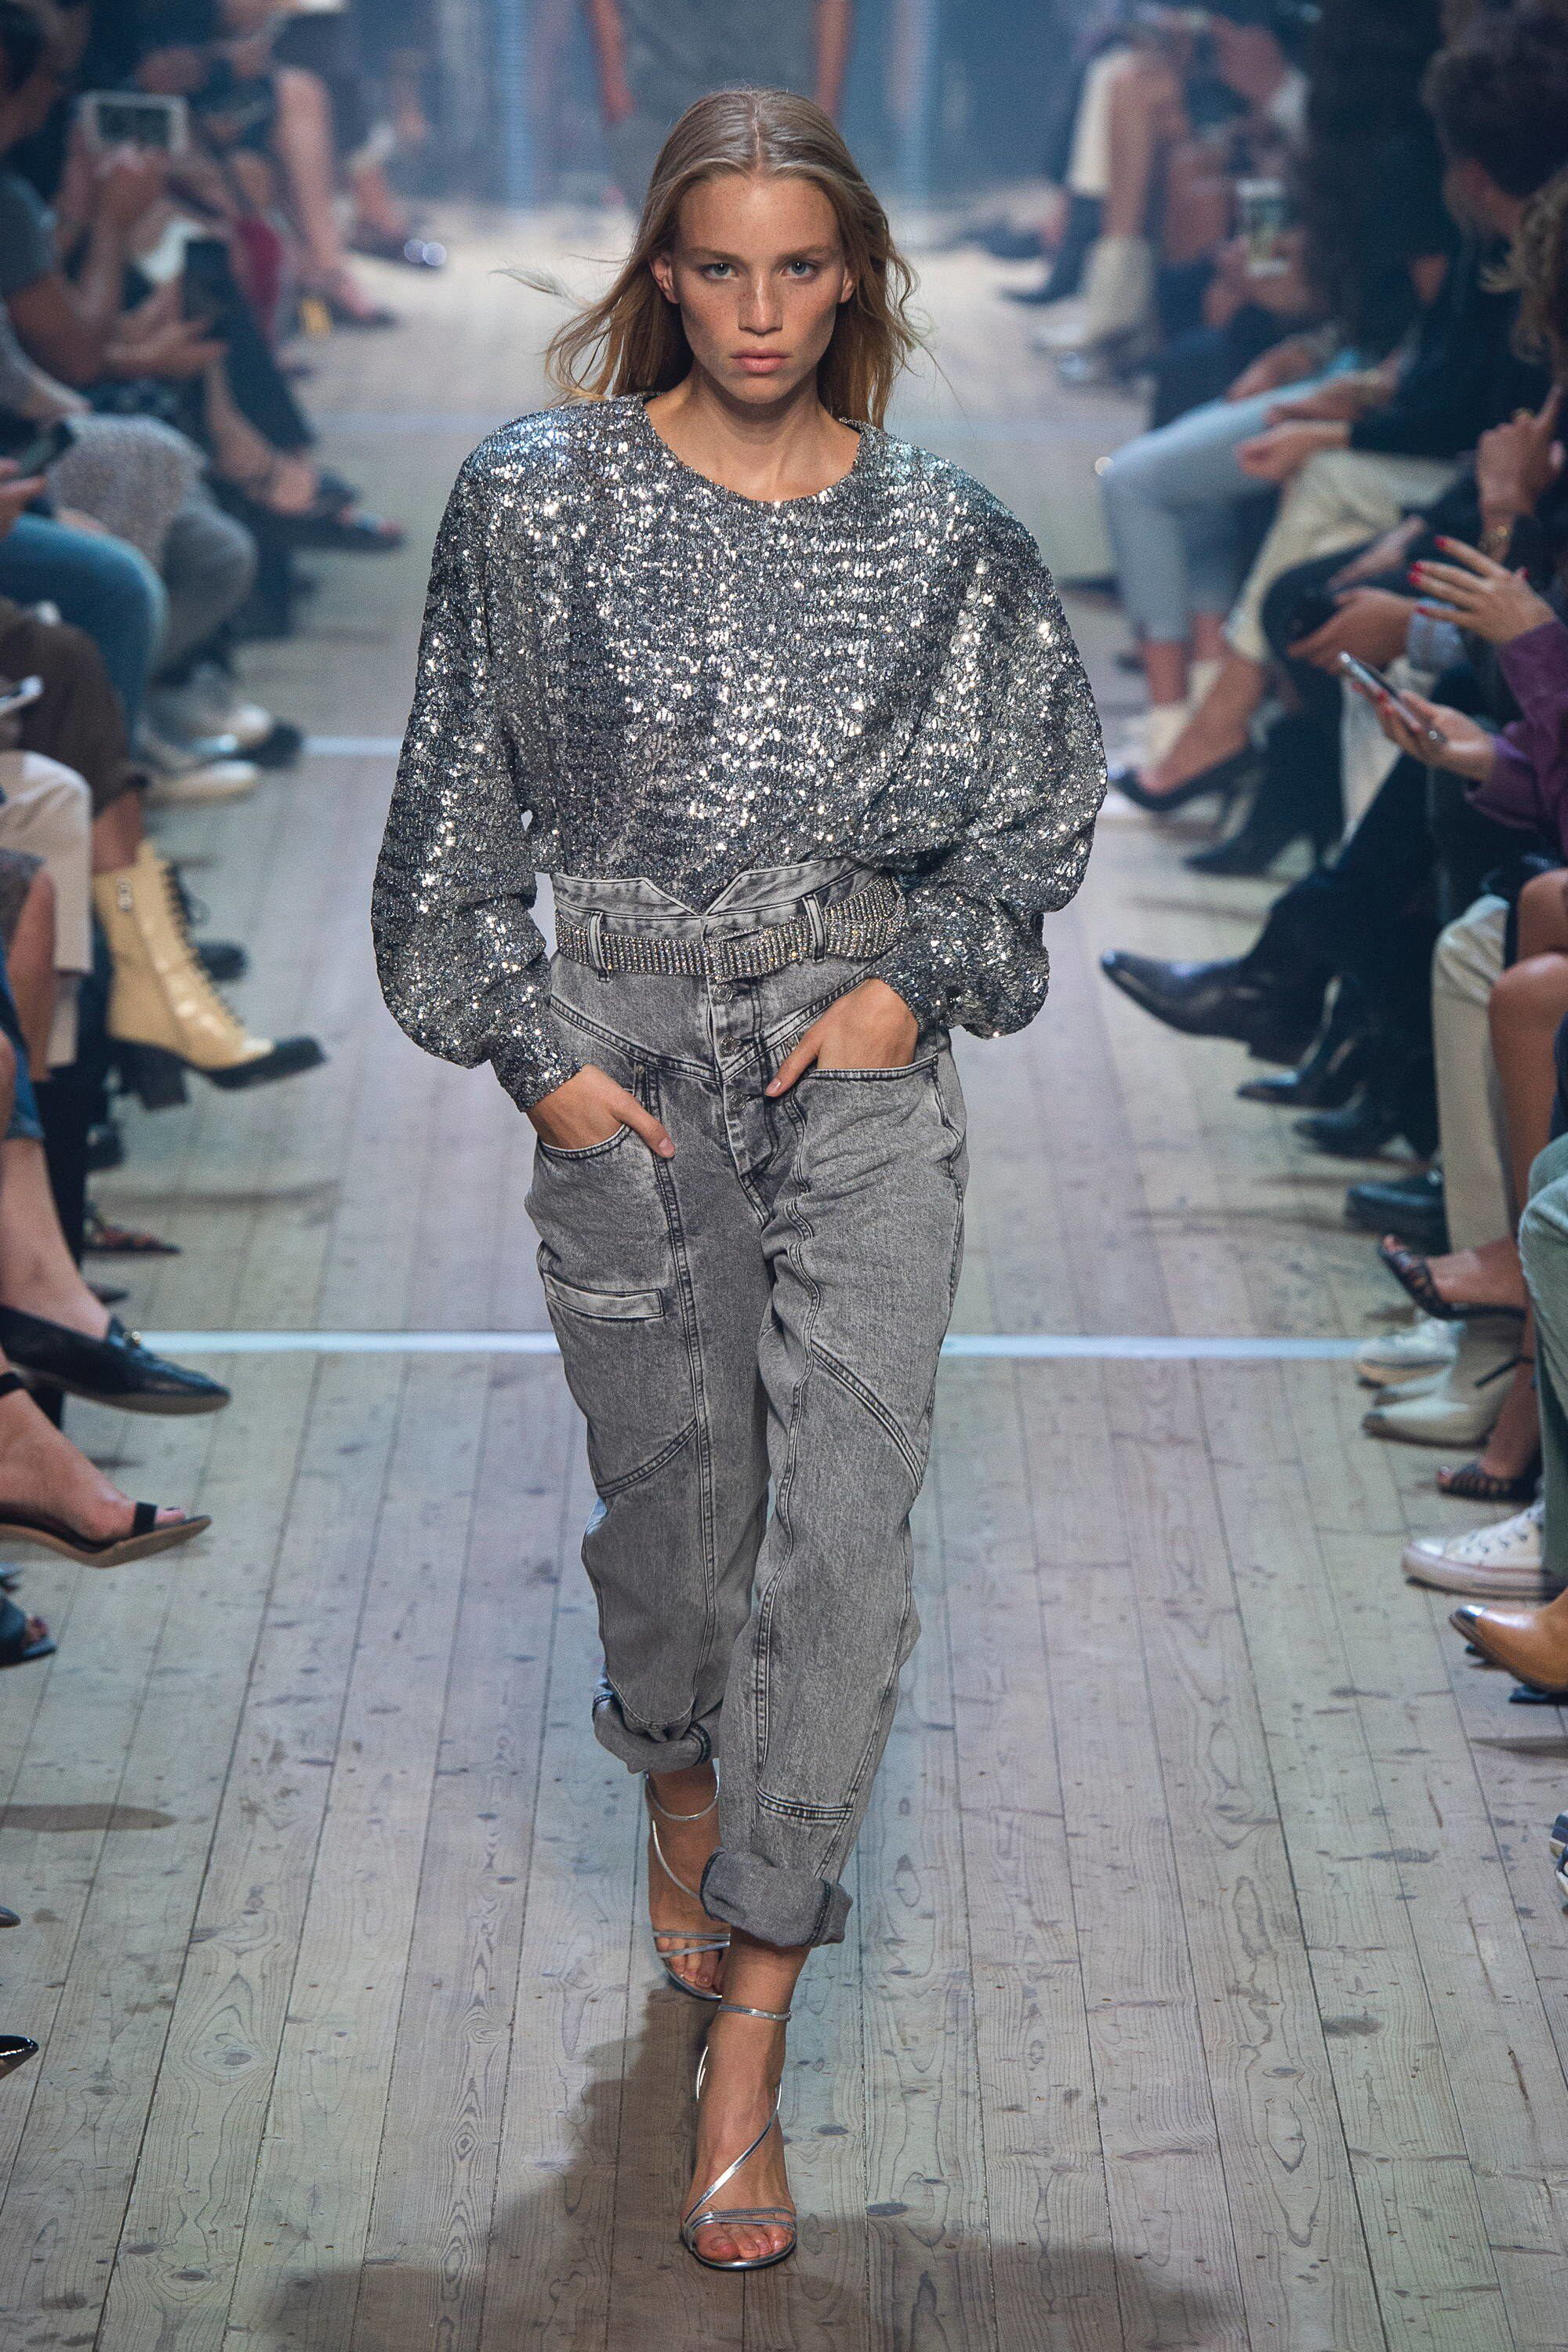 Isabel Marant Spring 2019 Ready-to-Wear Fashion Show